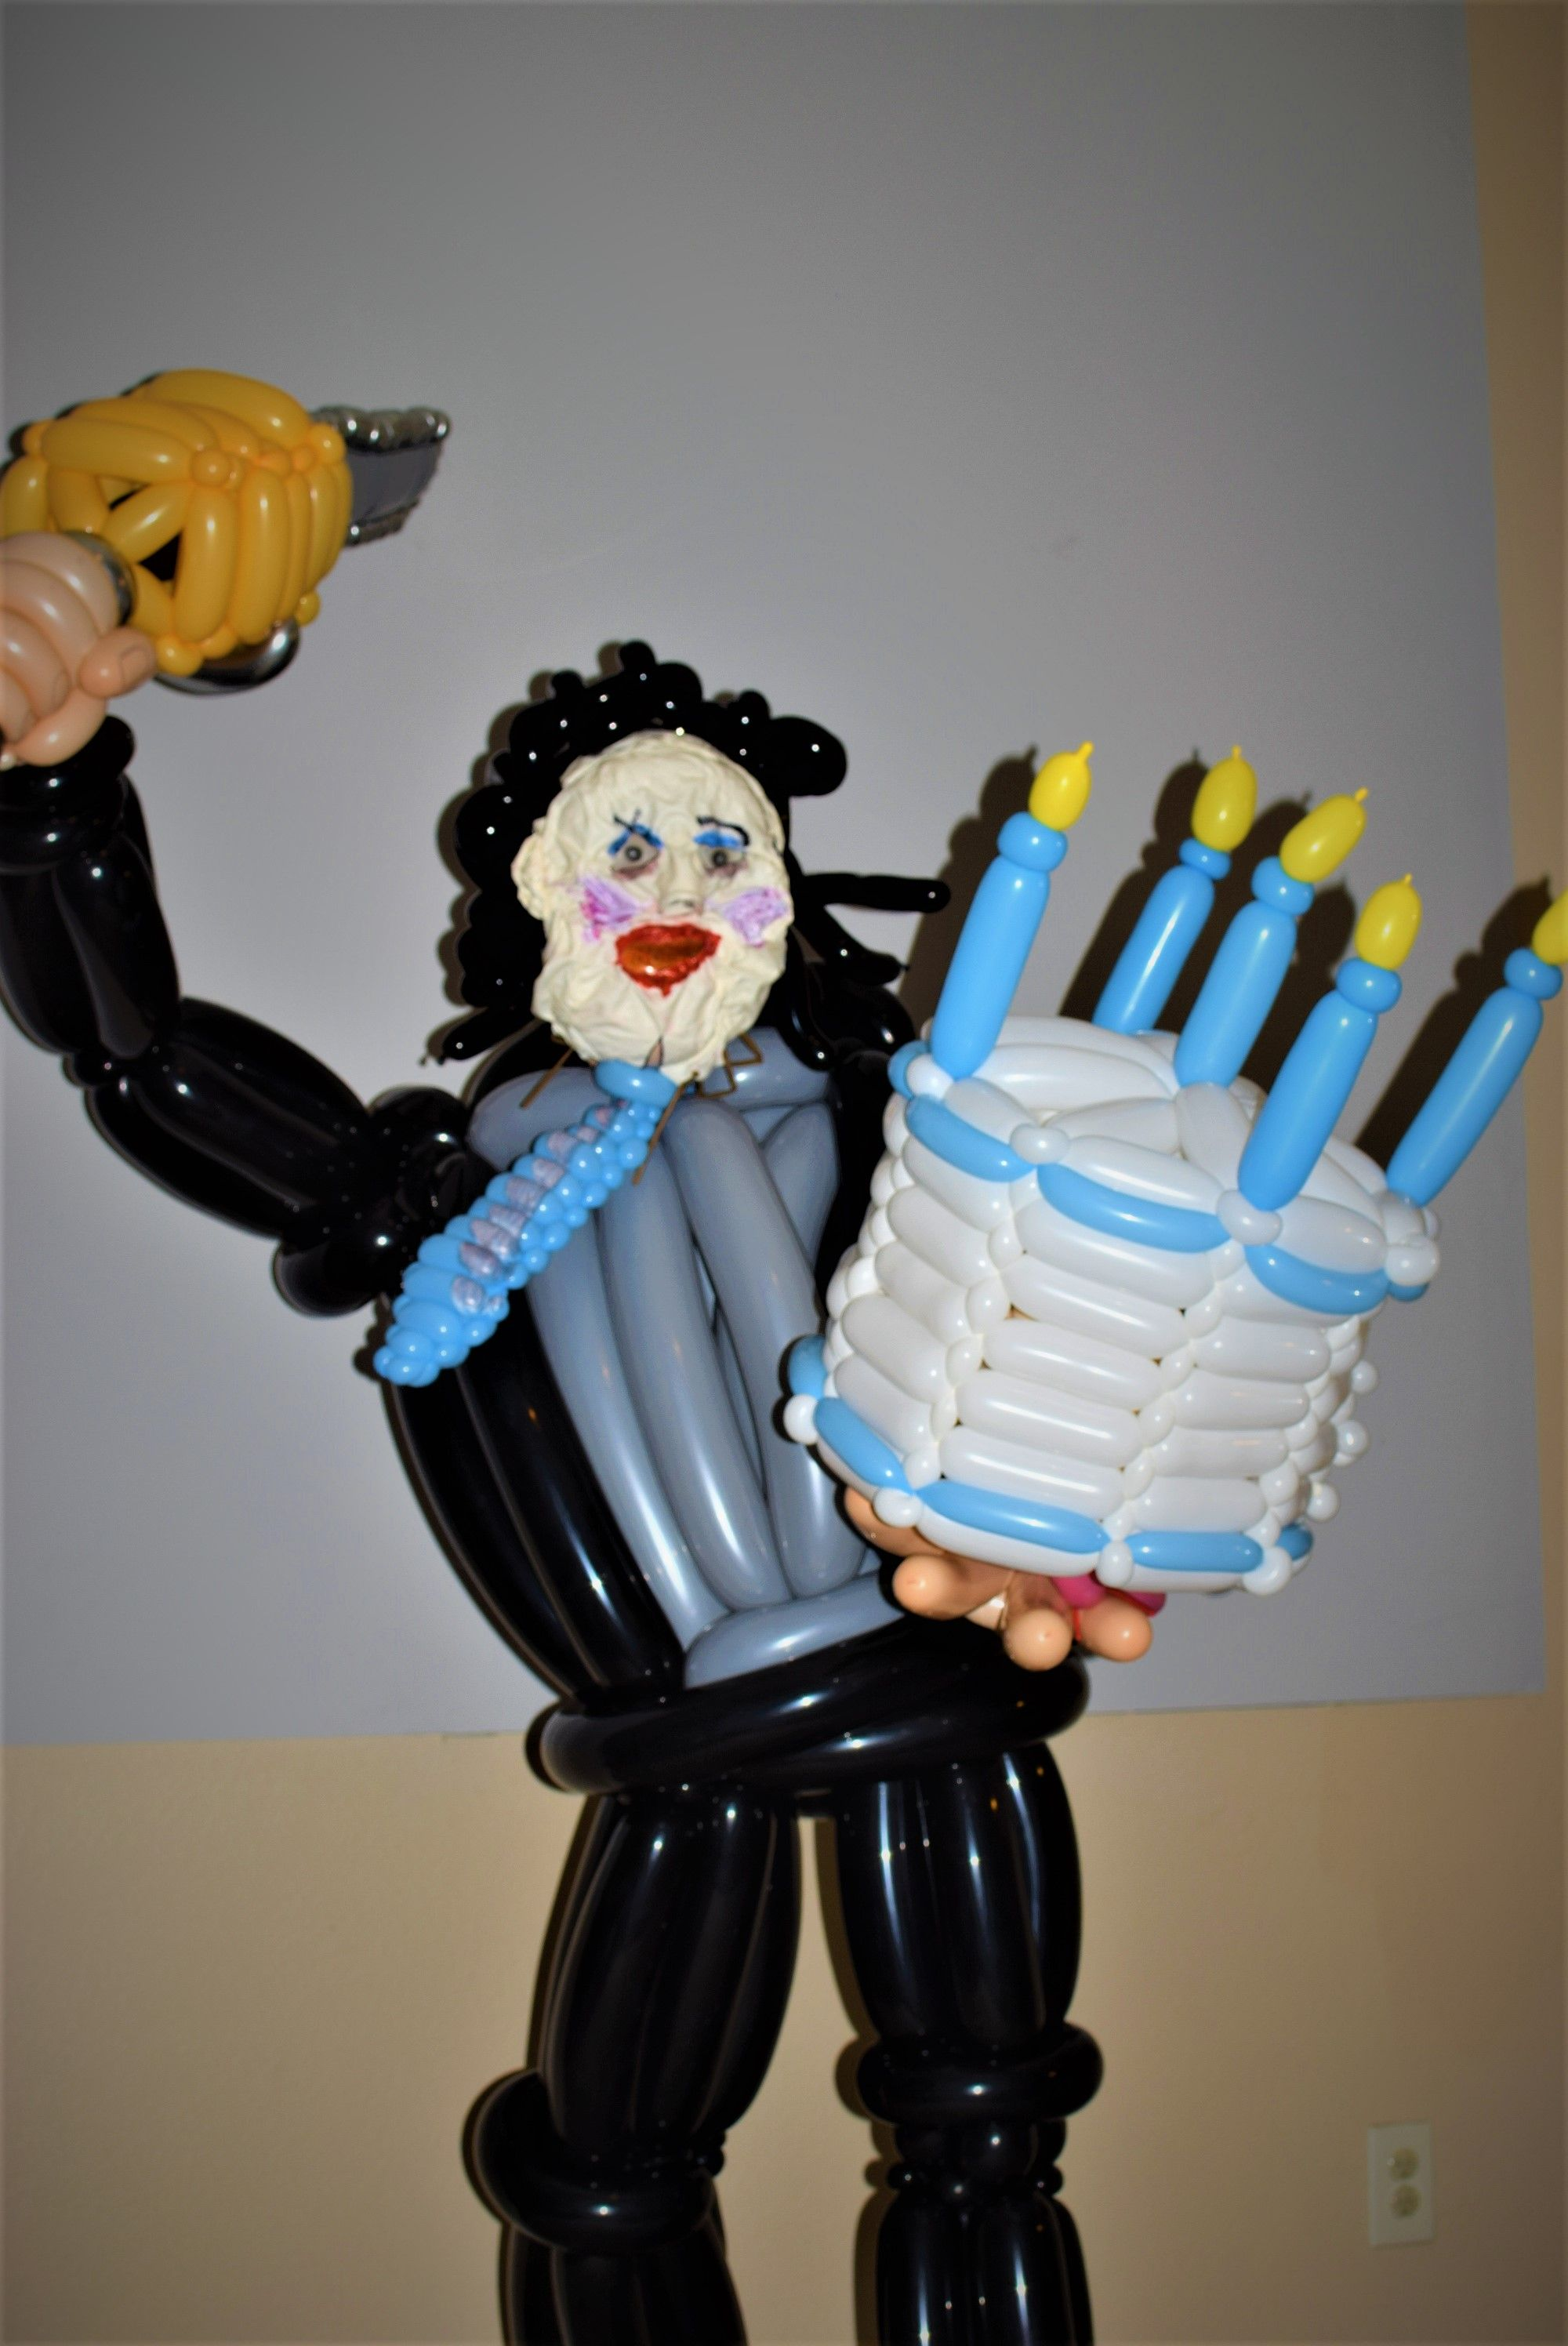 Texas Chainsaw Massacre Leatherface Birthday Balloon Sculpture By Las Vegas Artist And Entertainer Jeremy